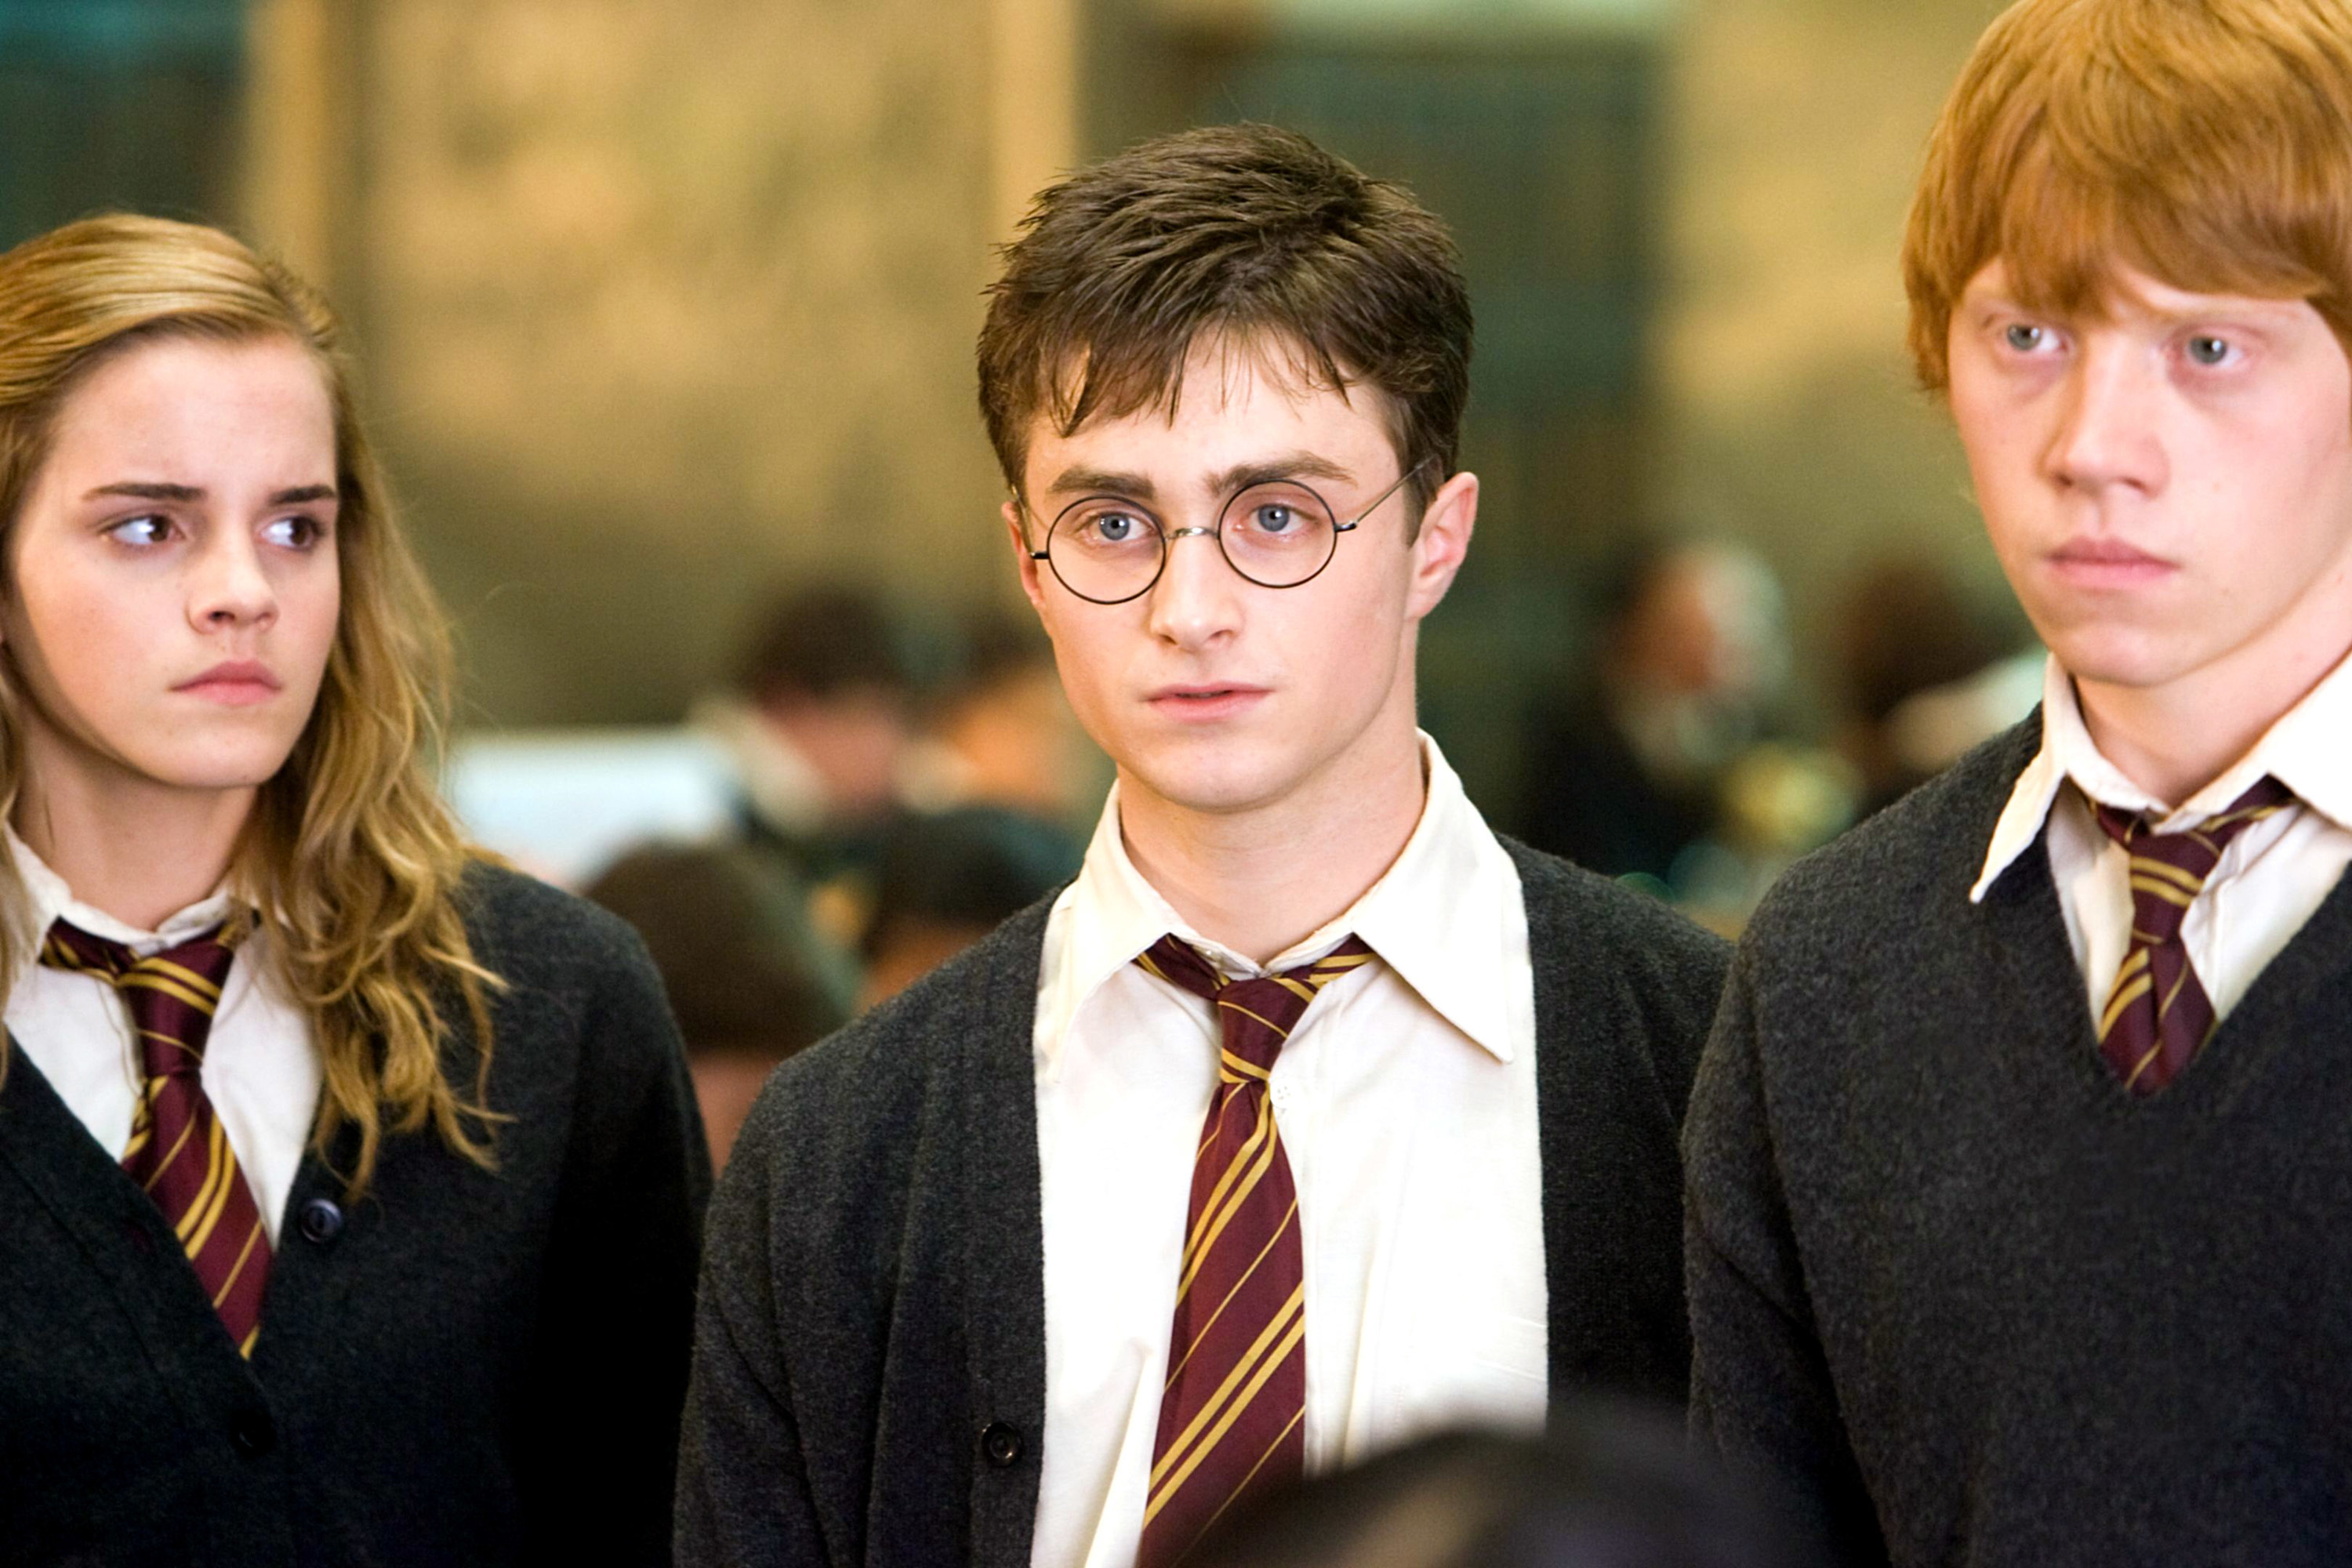 Radcliffe stands next to his costars Emma Watson and Rupert Grint in their Hogwarts uniforms